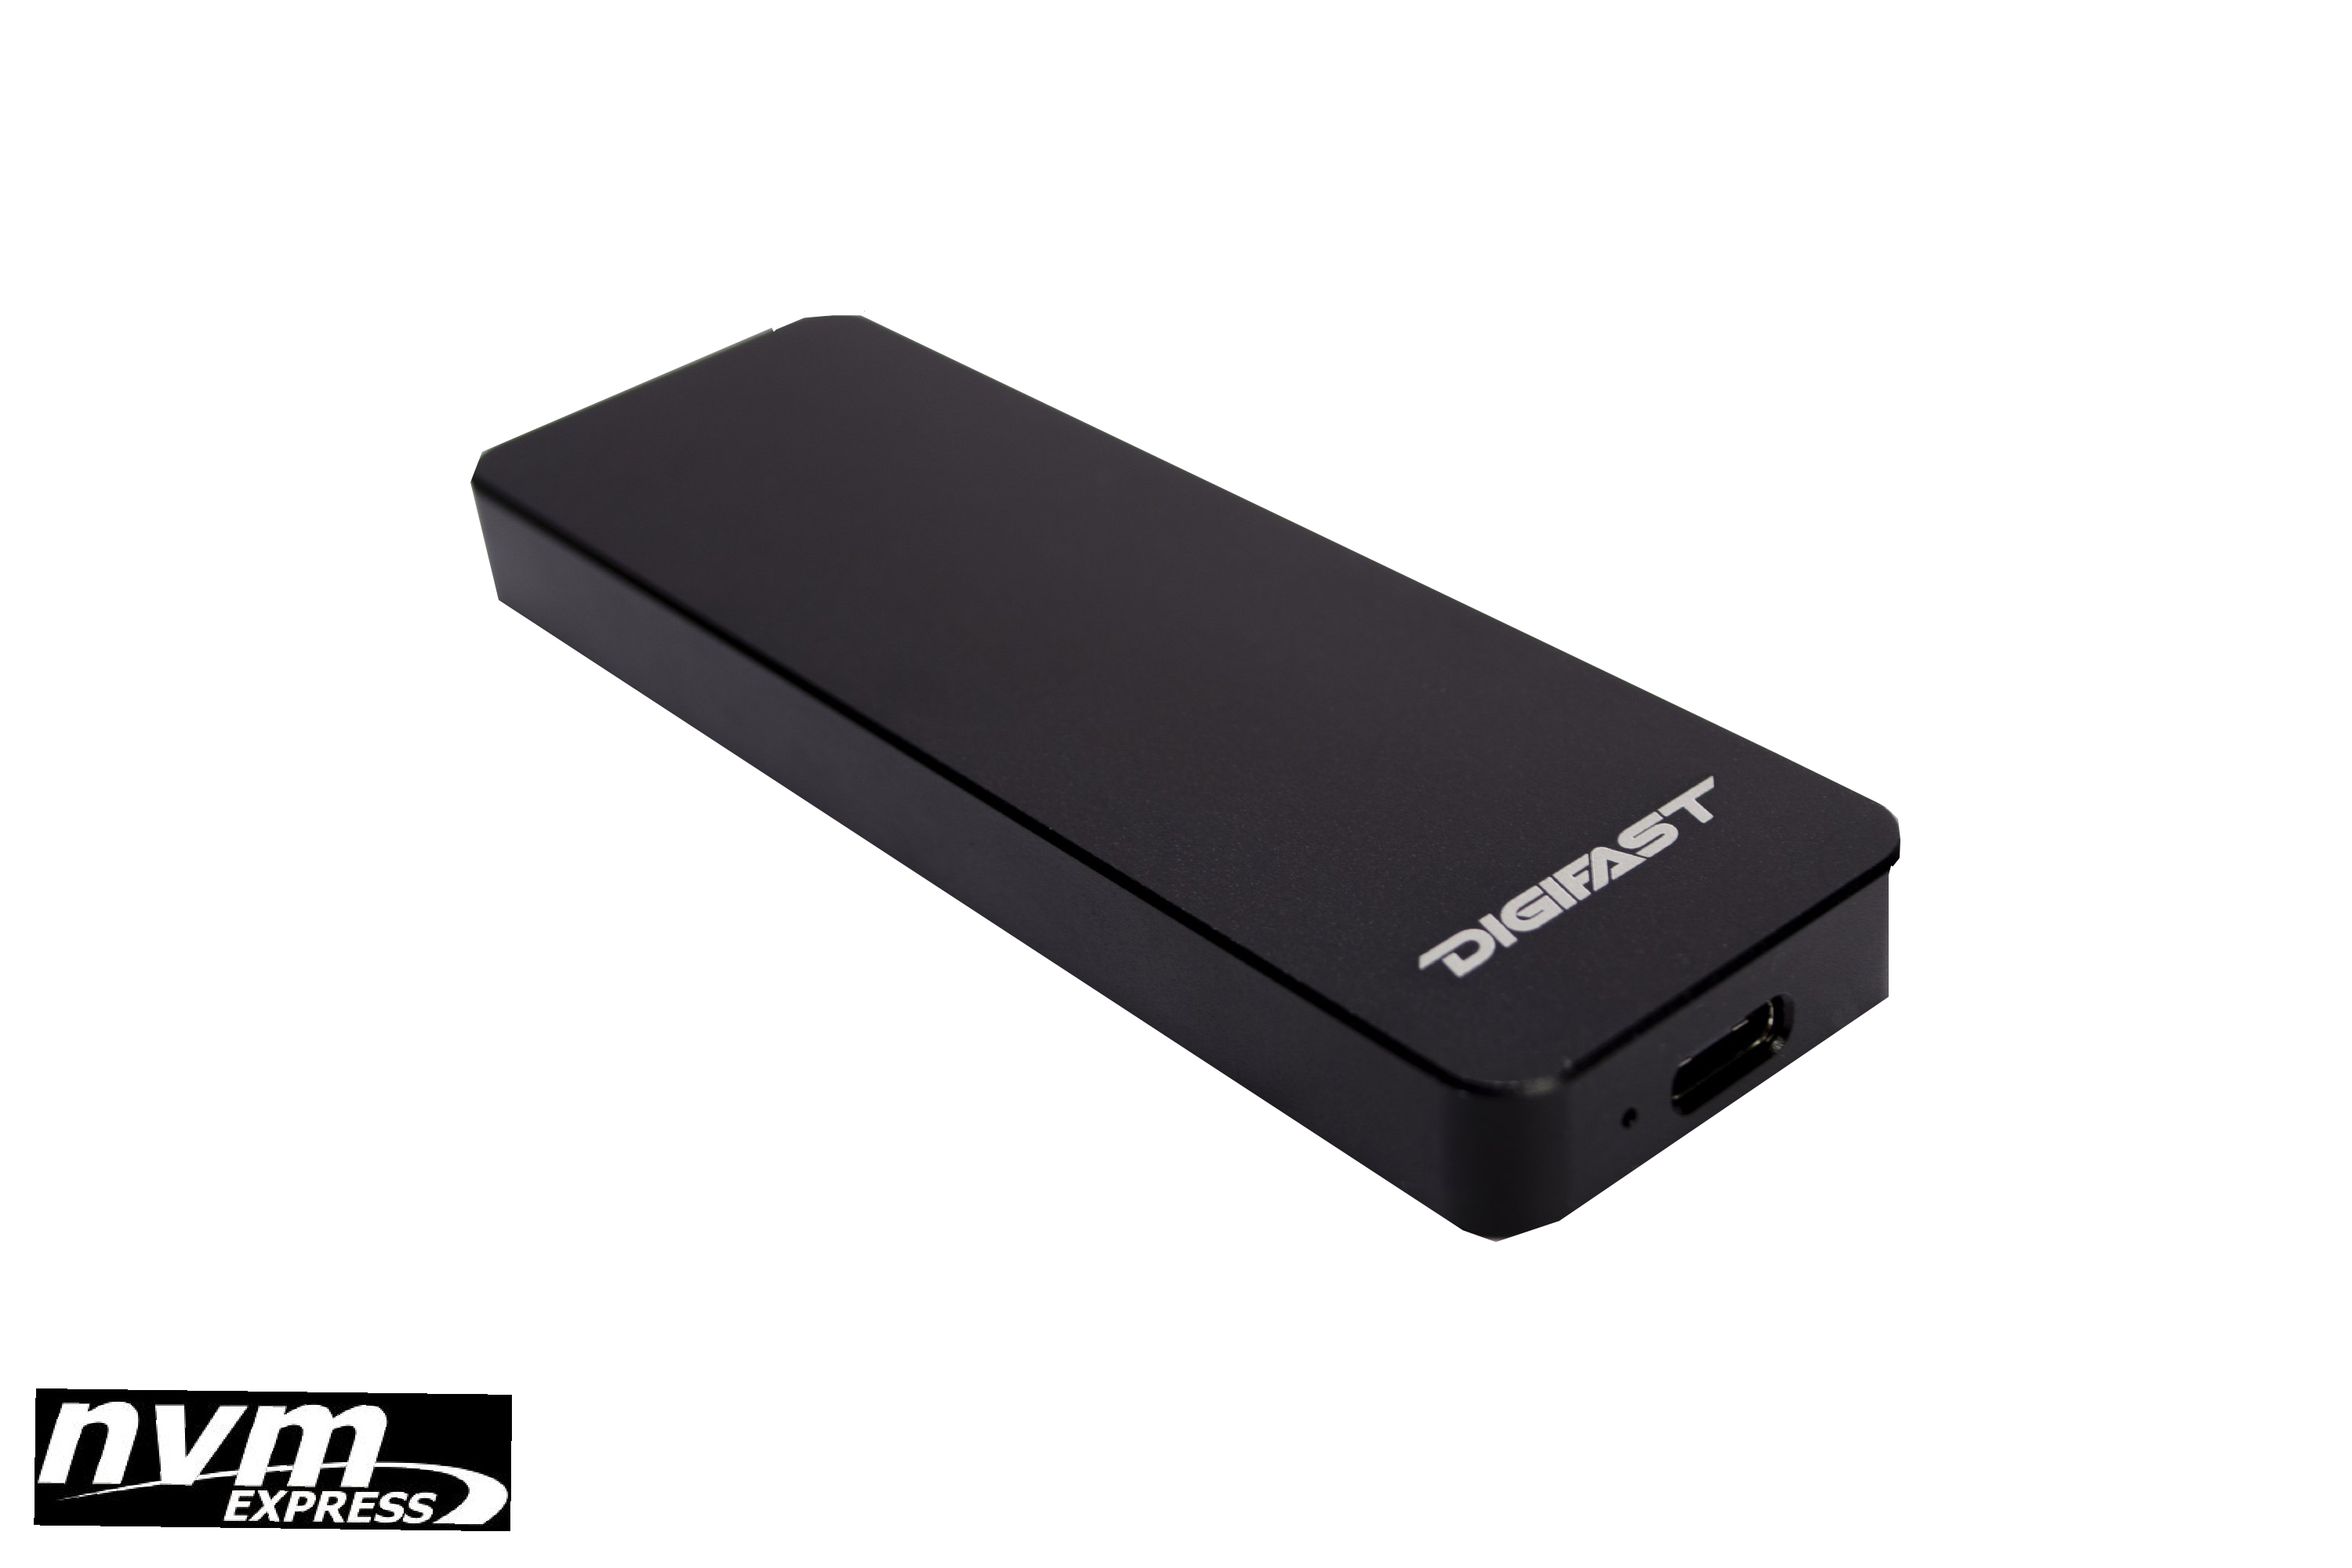 M.2 Enclosure - Digifast M.2 NVMe SSD To USB3.1 Enclosure - Black